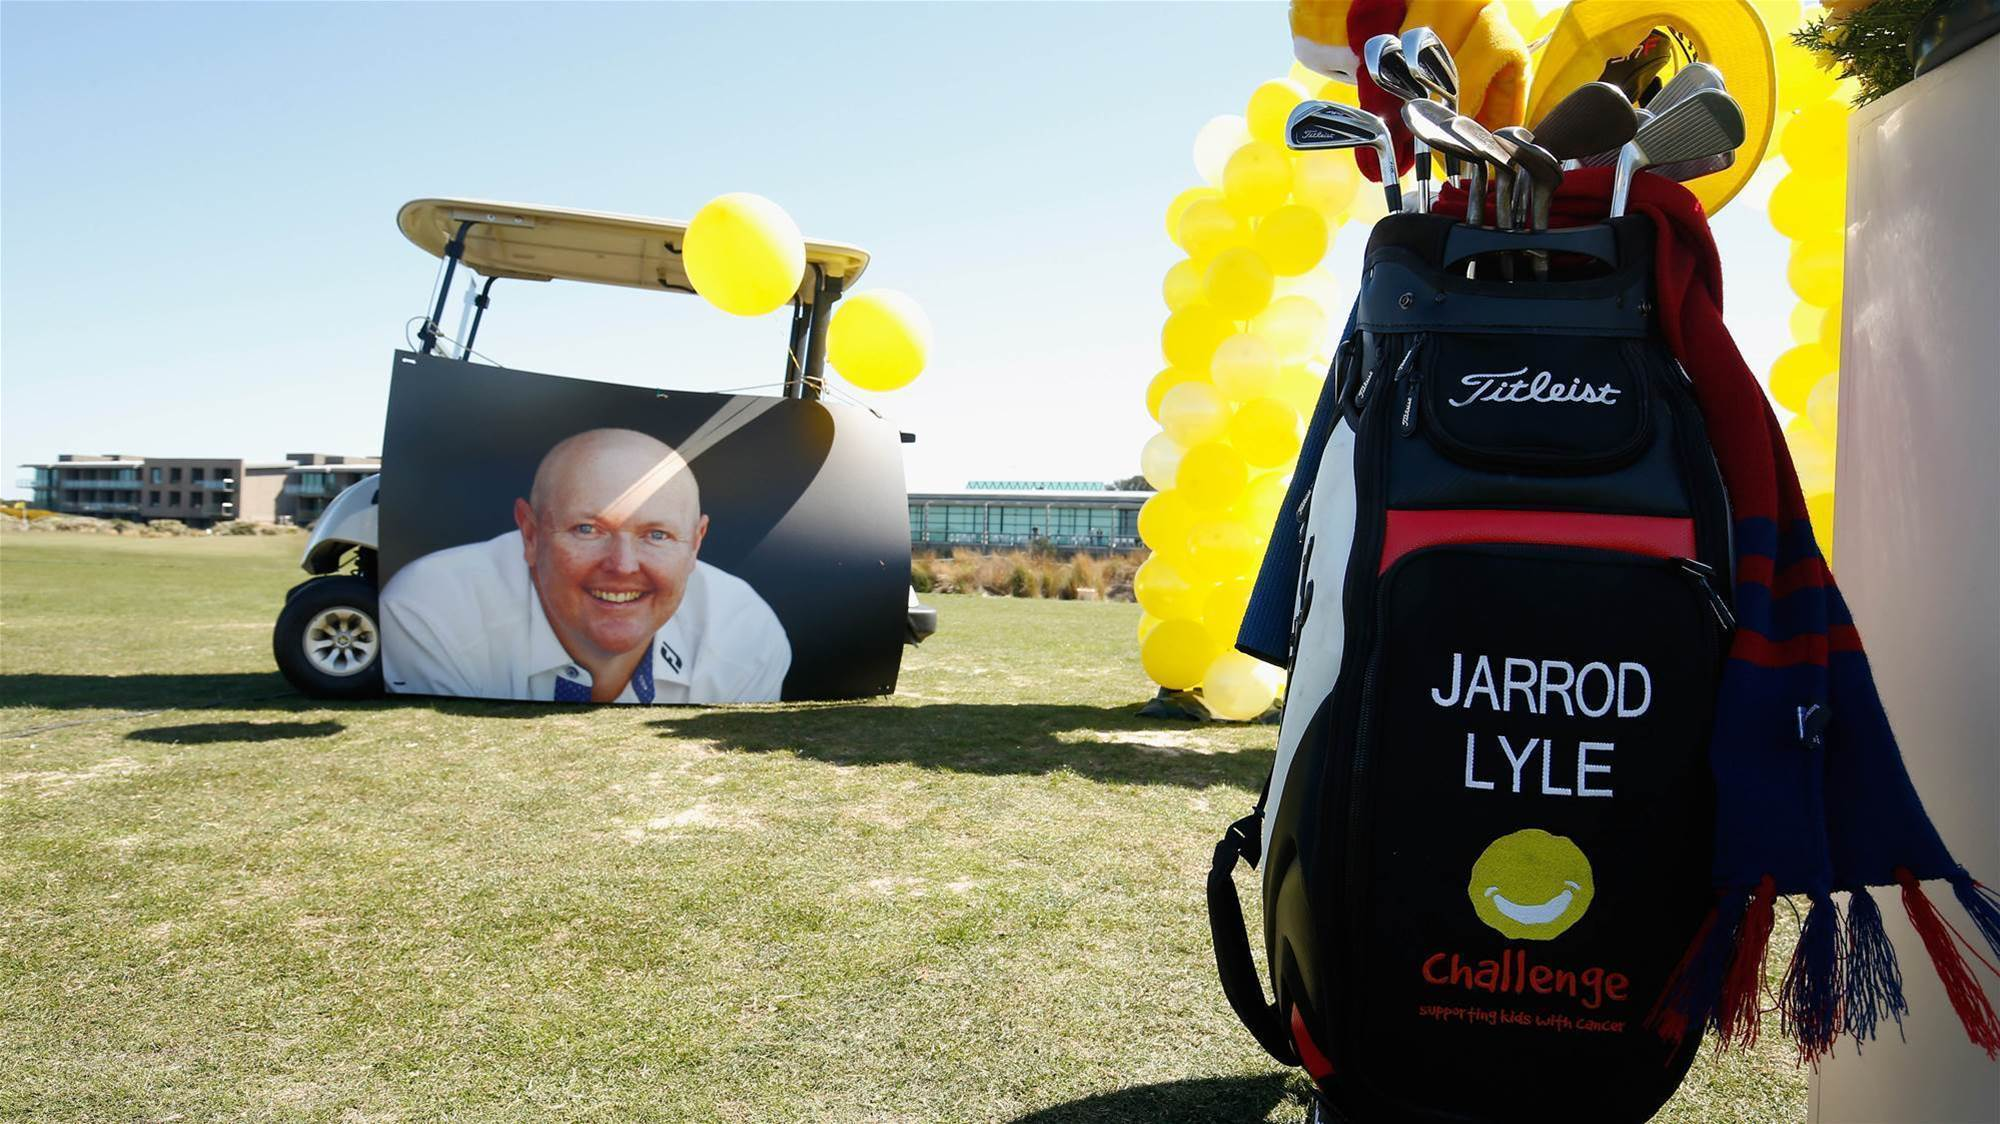 Help raise funds for Challenge by #DoingItForJarrod this August